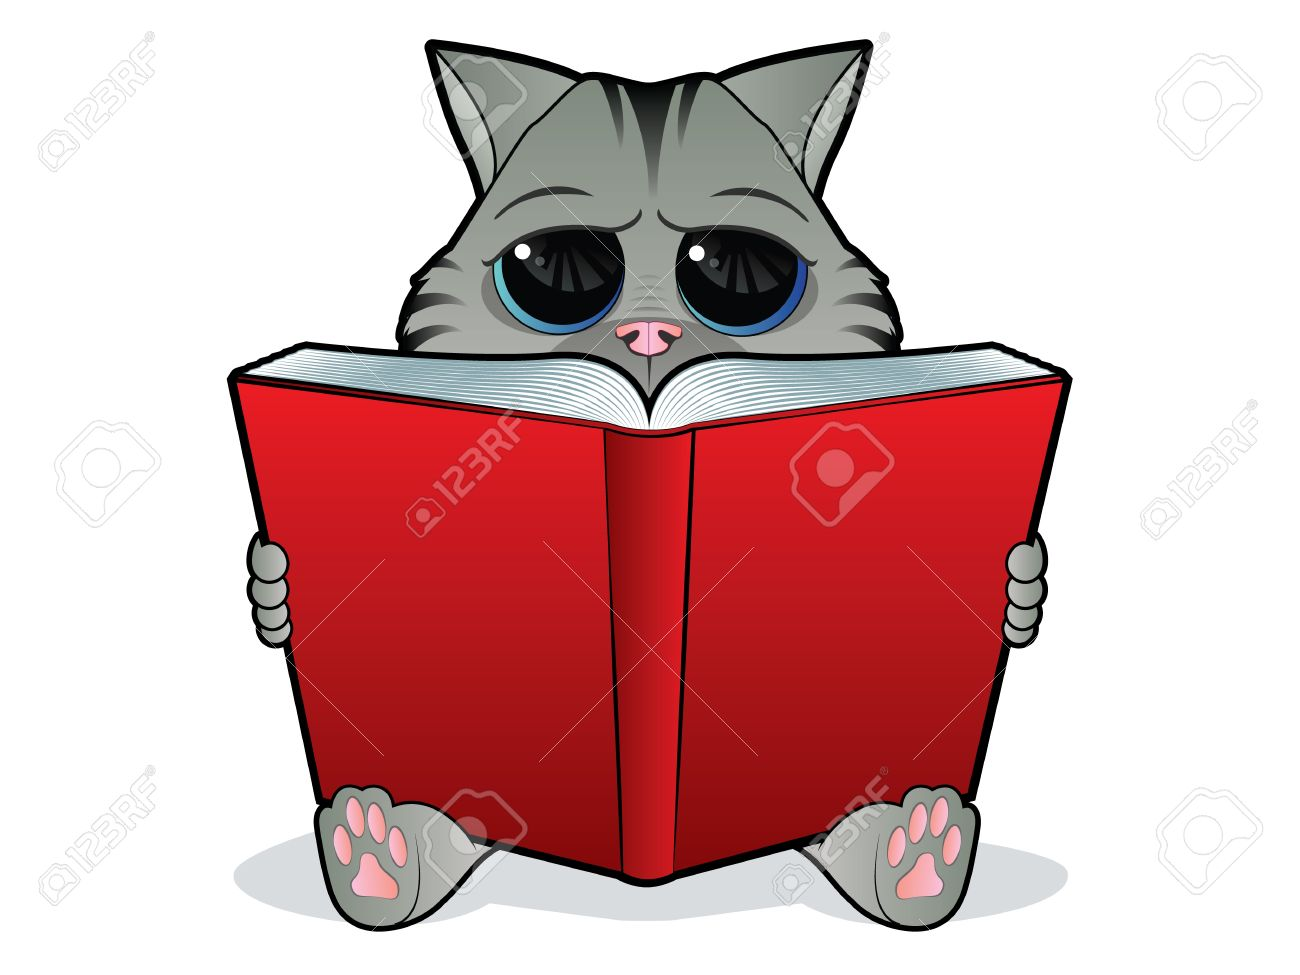 Kitten reading a large open book Stock Vector - 12491566